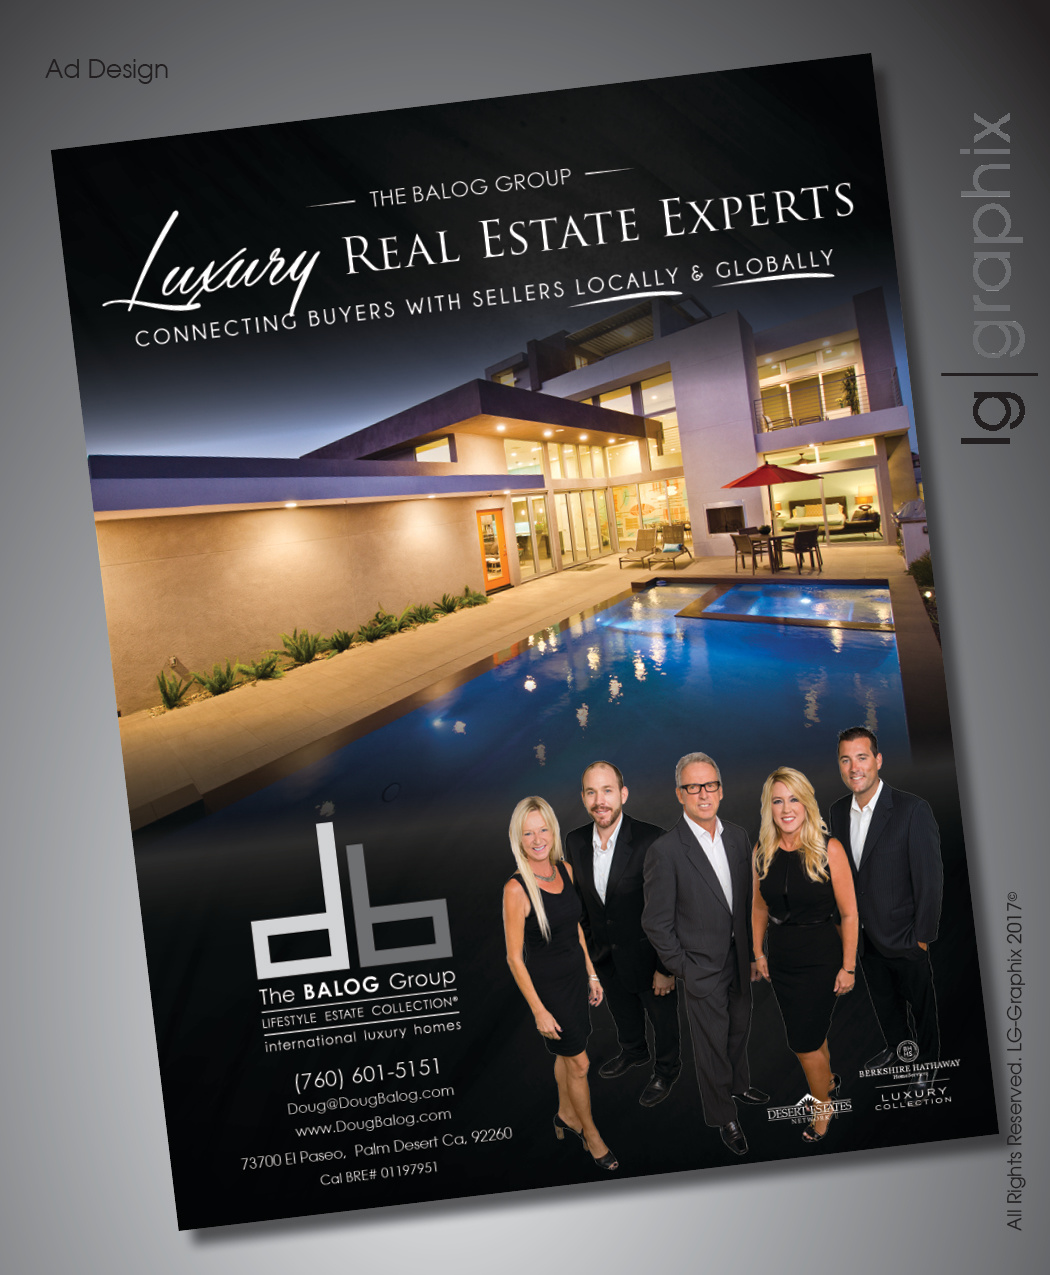 Palm Desert Ad Design